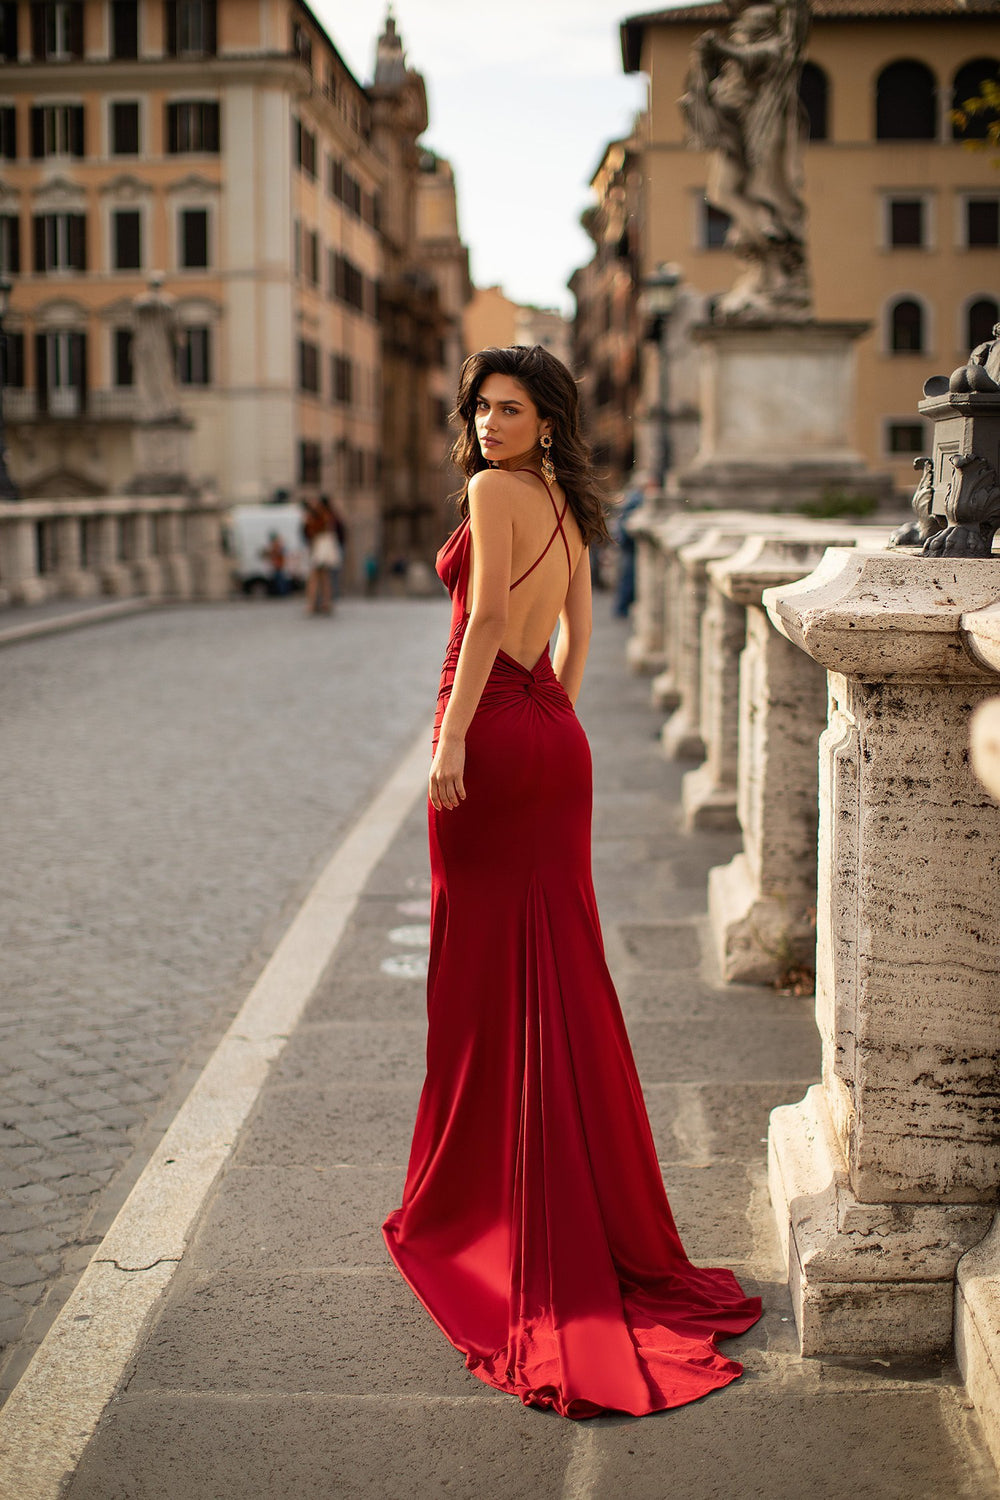 Maya - Wine Red Cowl Neck Gown with Low Back, Knot Detail & Side Slit